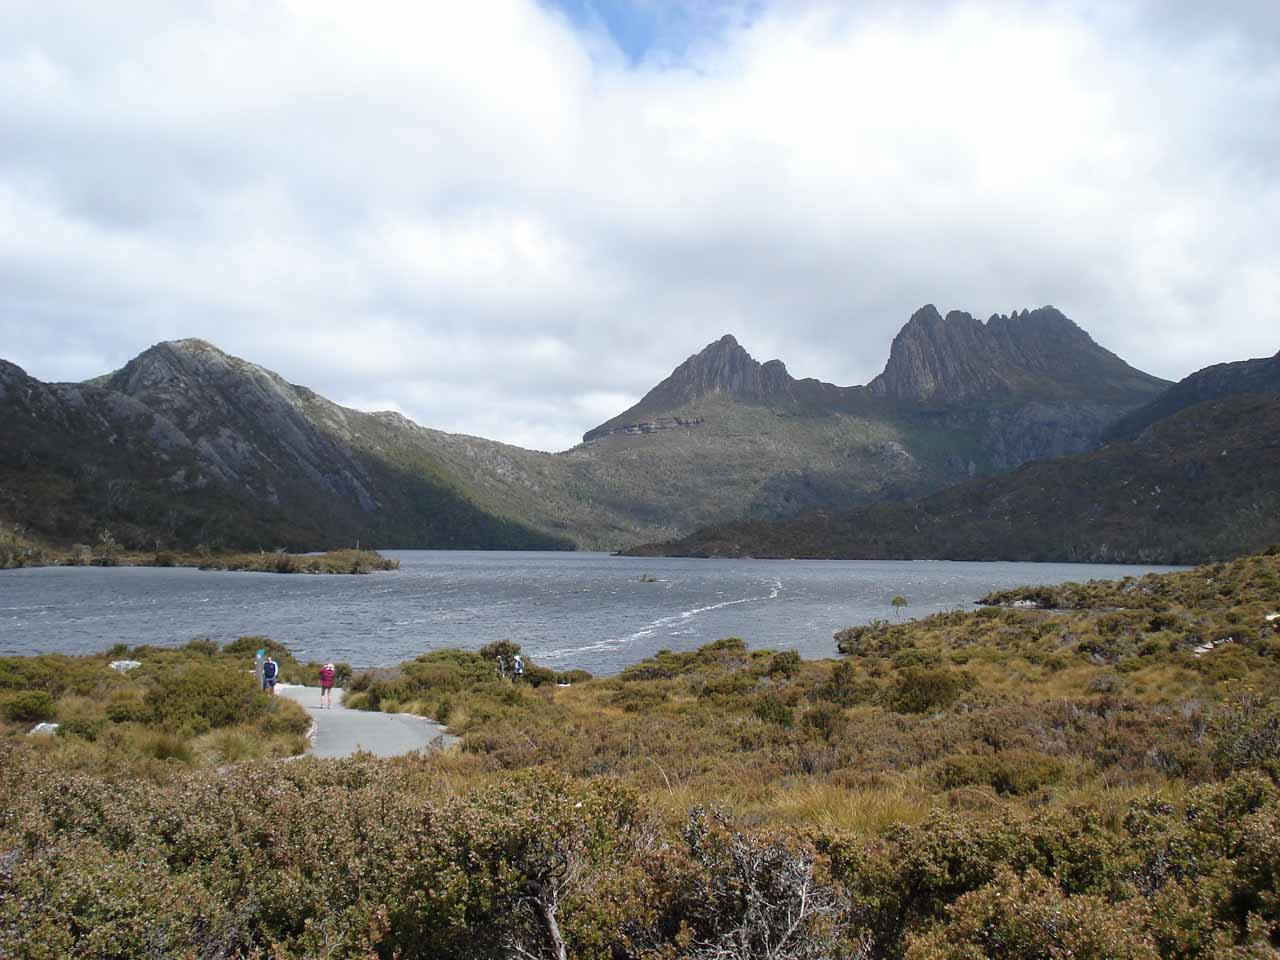 This was Cradle Mountain and Dove Lake in Cradle valley, which were not far from the Lemonthyme Lodge Wilderness Retreat